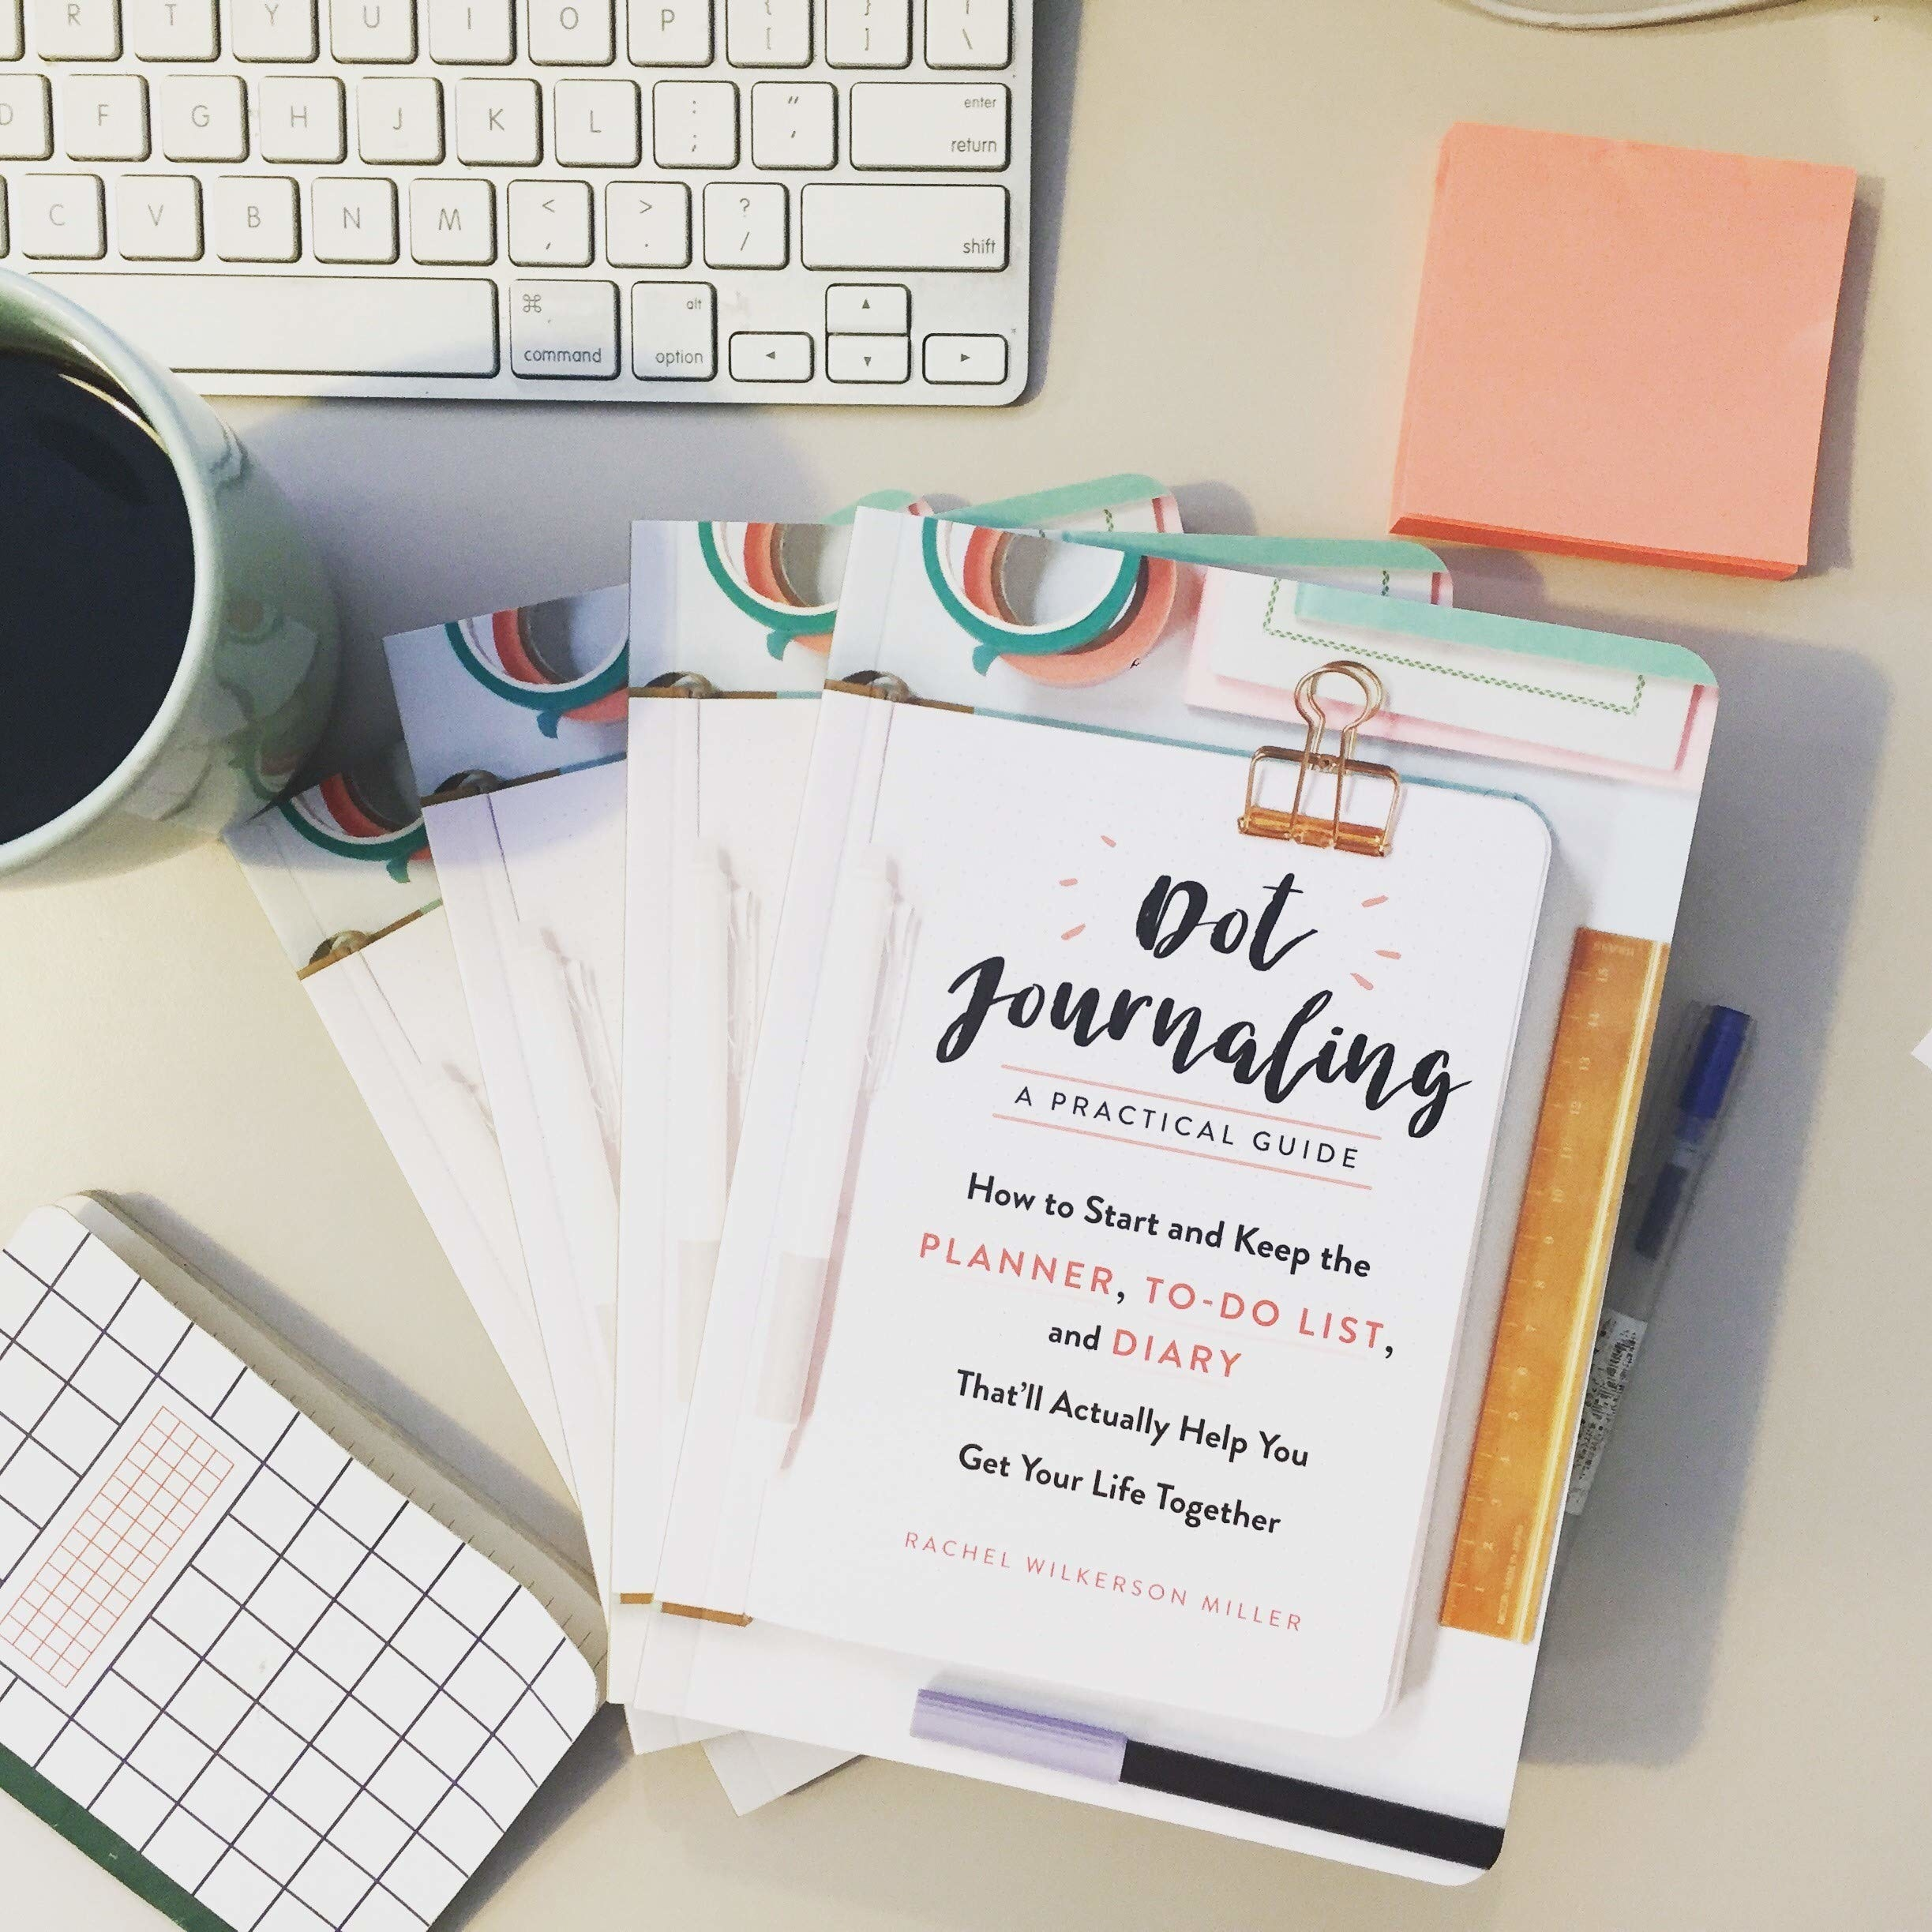 Three dot journaling guides on a desk